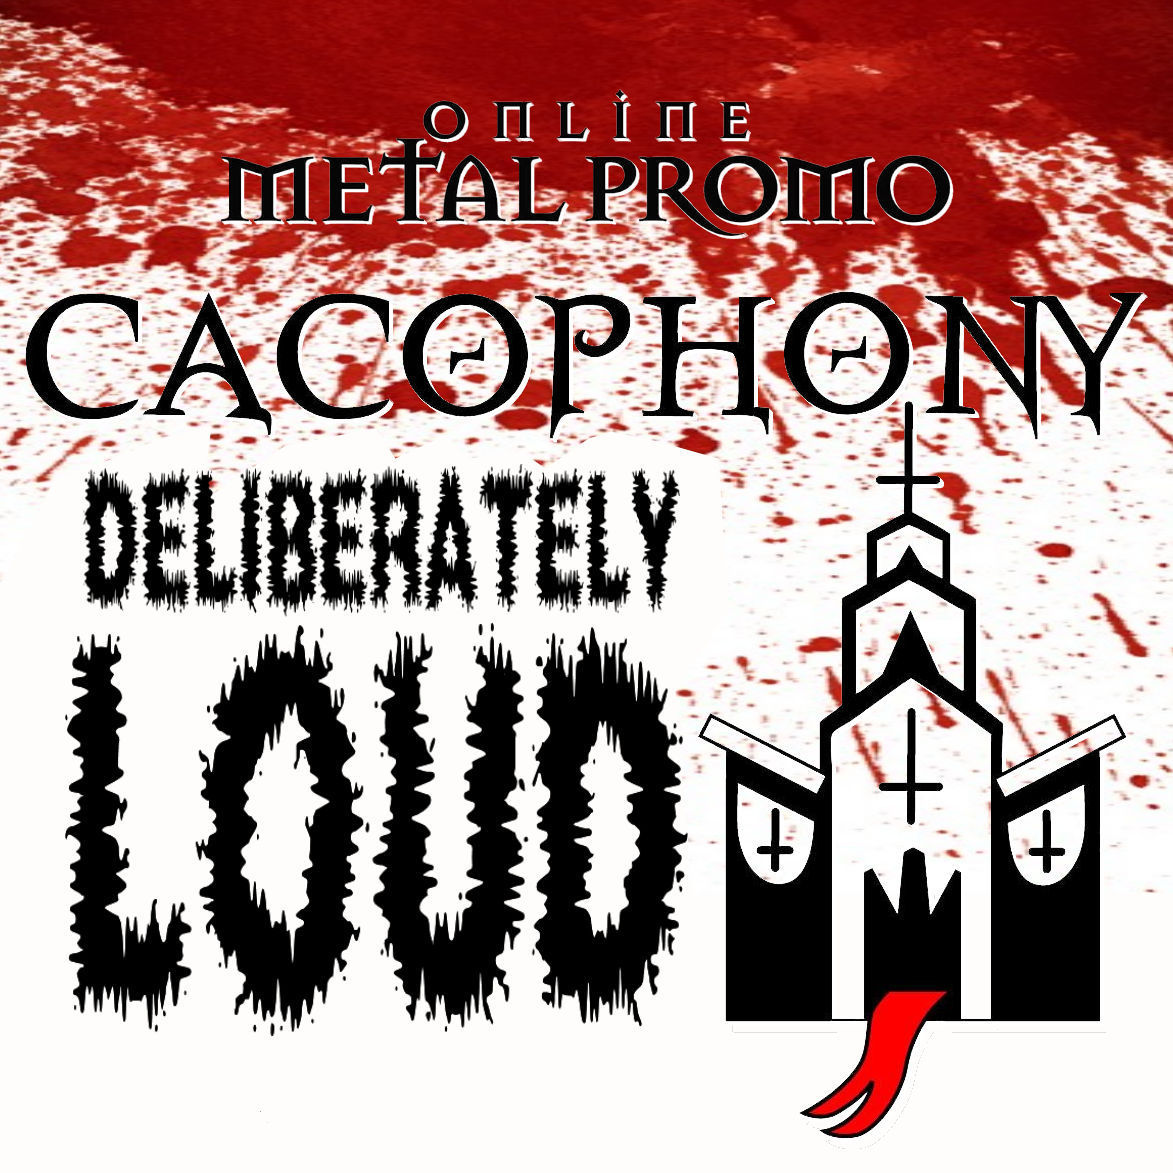 OMP-Cacophony compilation cover artwork  September 2016